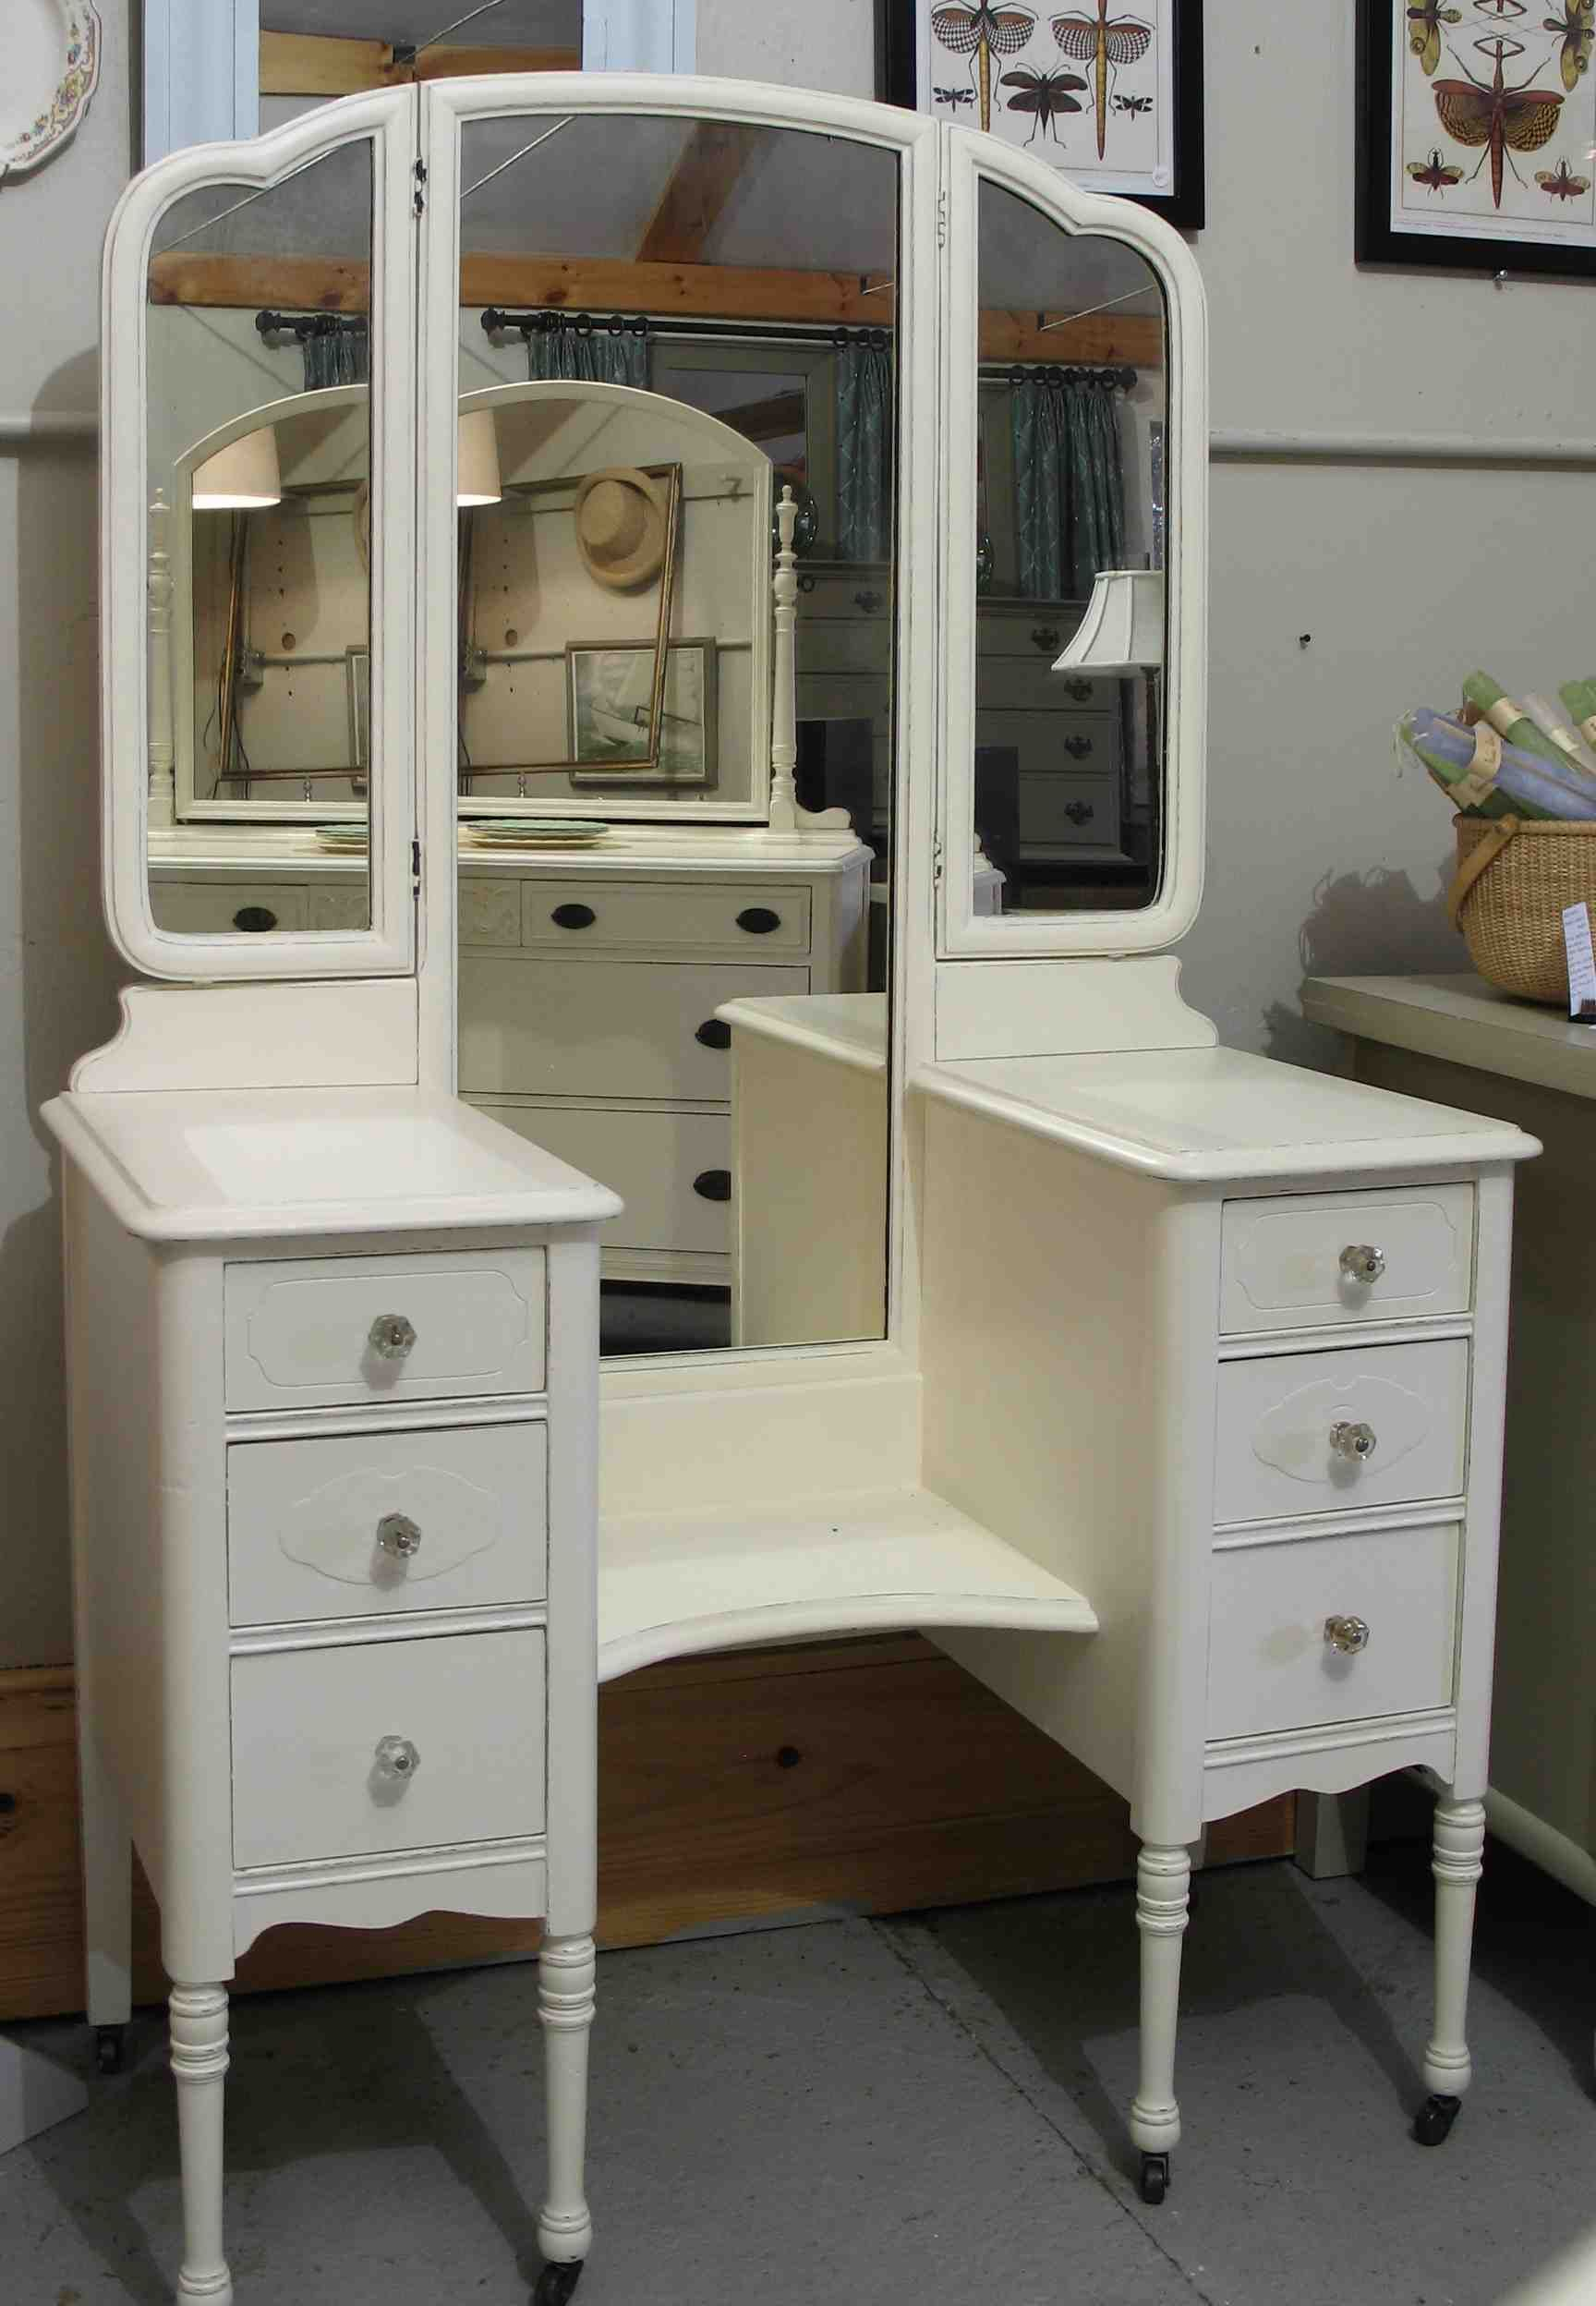 Antique dressing table with mirror - Vintage Drop Well Vanity A 1930s Dressing Table Painted Cottage White With